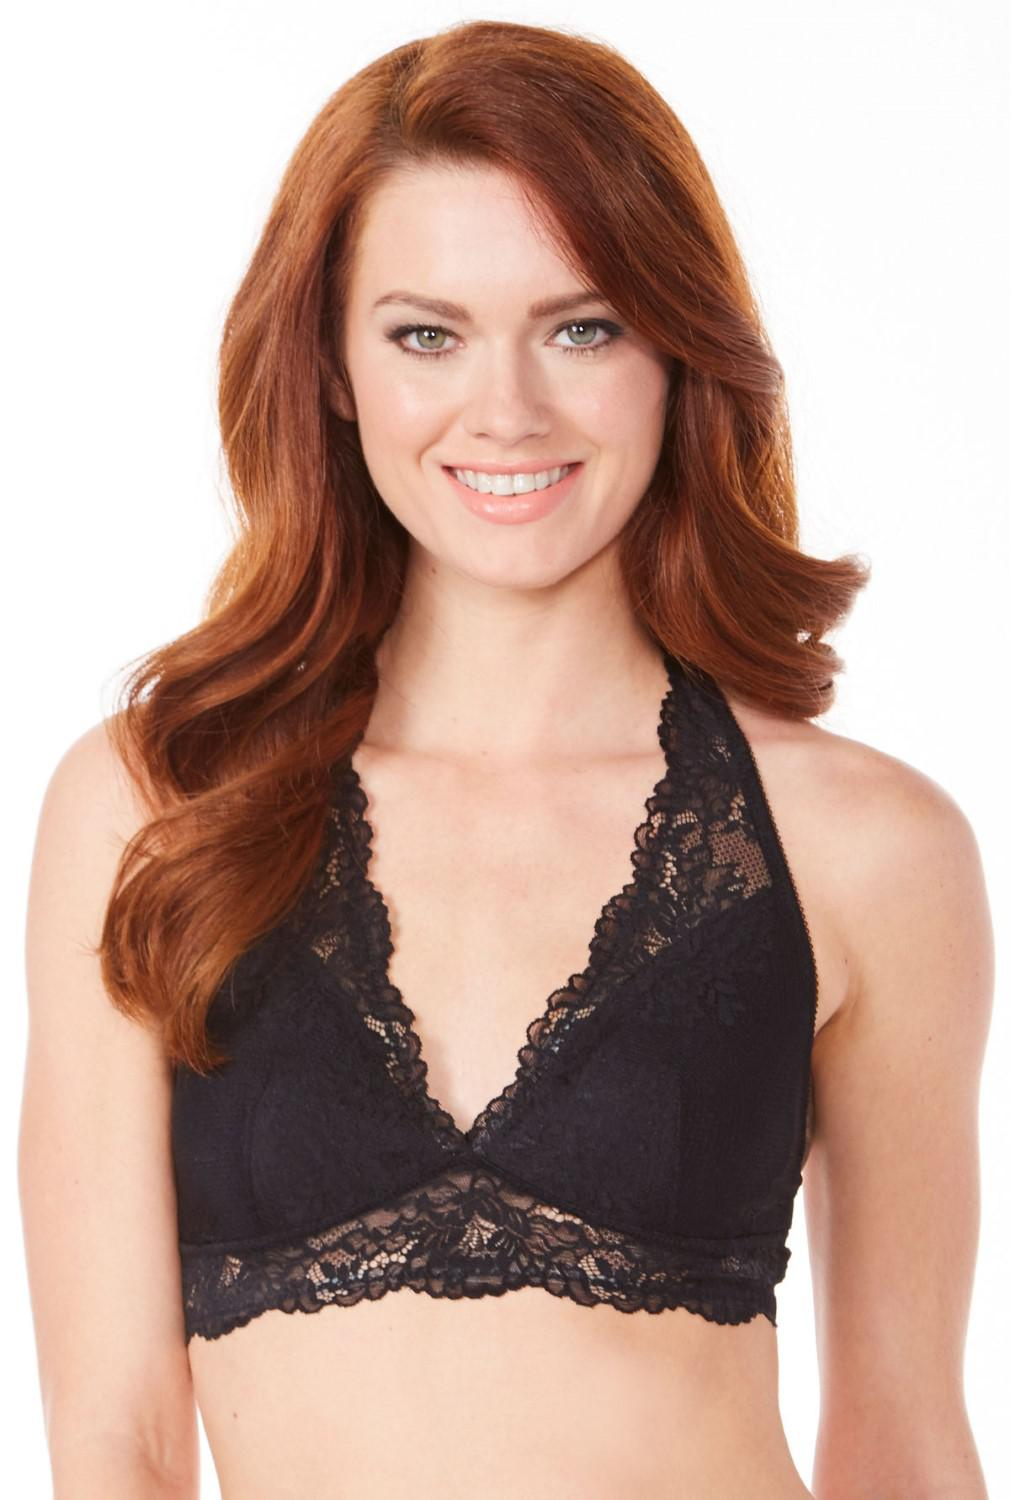 dd1175cf48500 Lyst - Maidenform Dm1126 Lace Racerback Bralette in Black - Save 14%